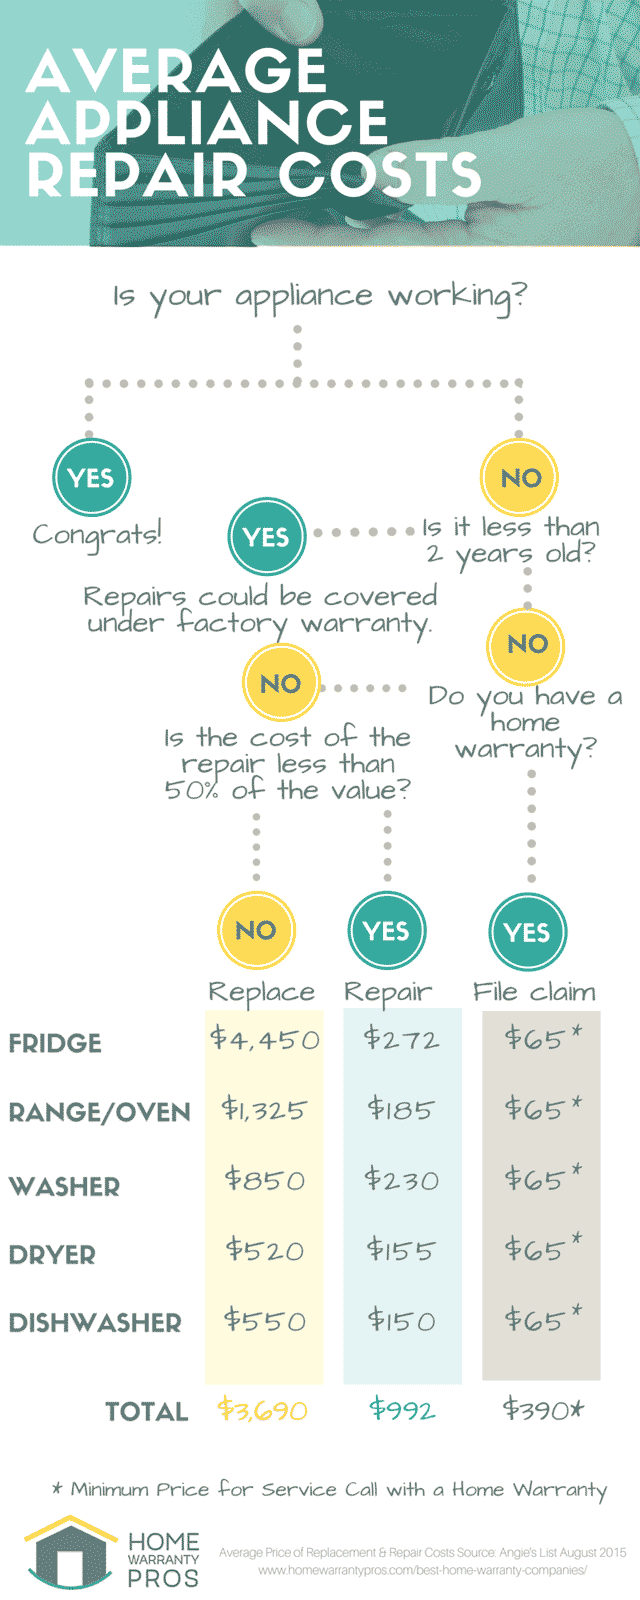 Average Appliance Repair Costs Infographic